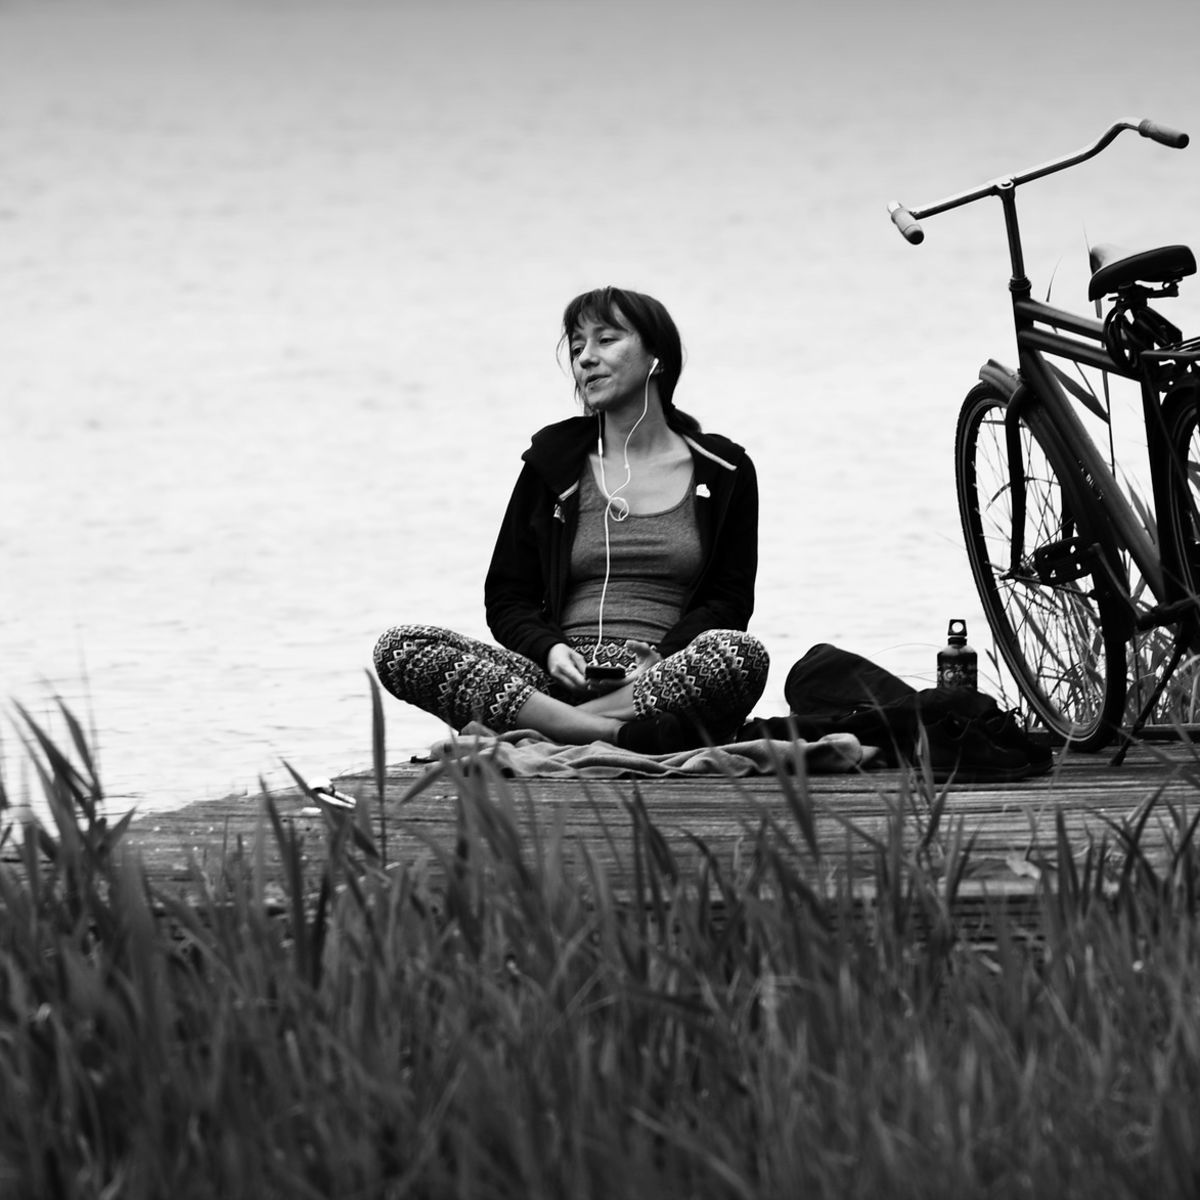 Woman: Meditation at the lake with bicycle